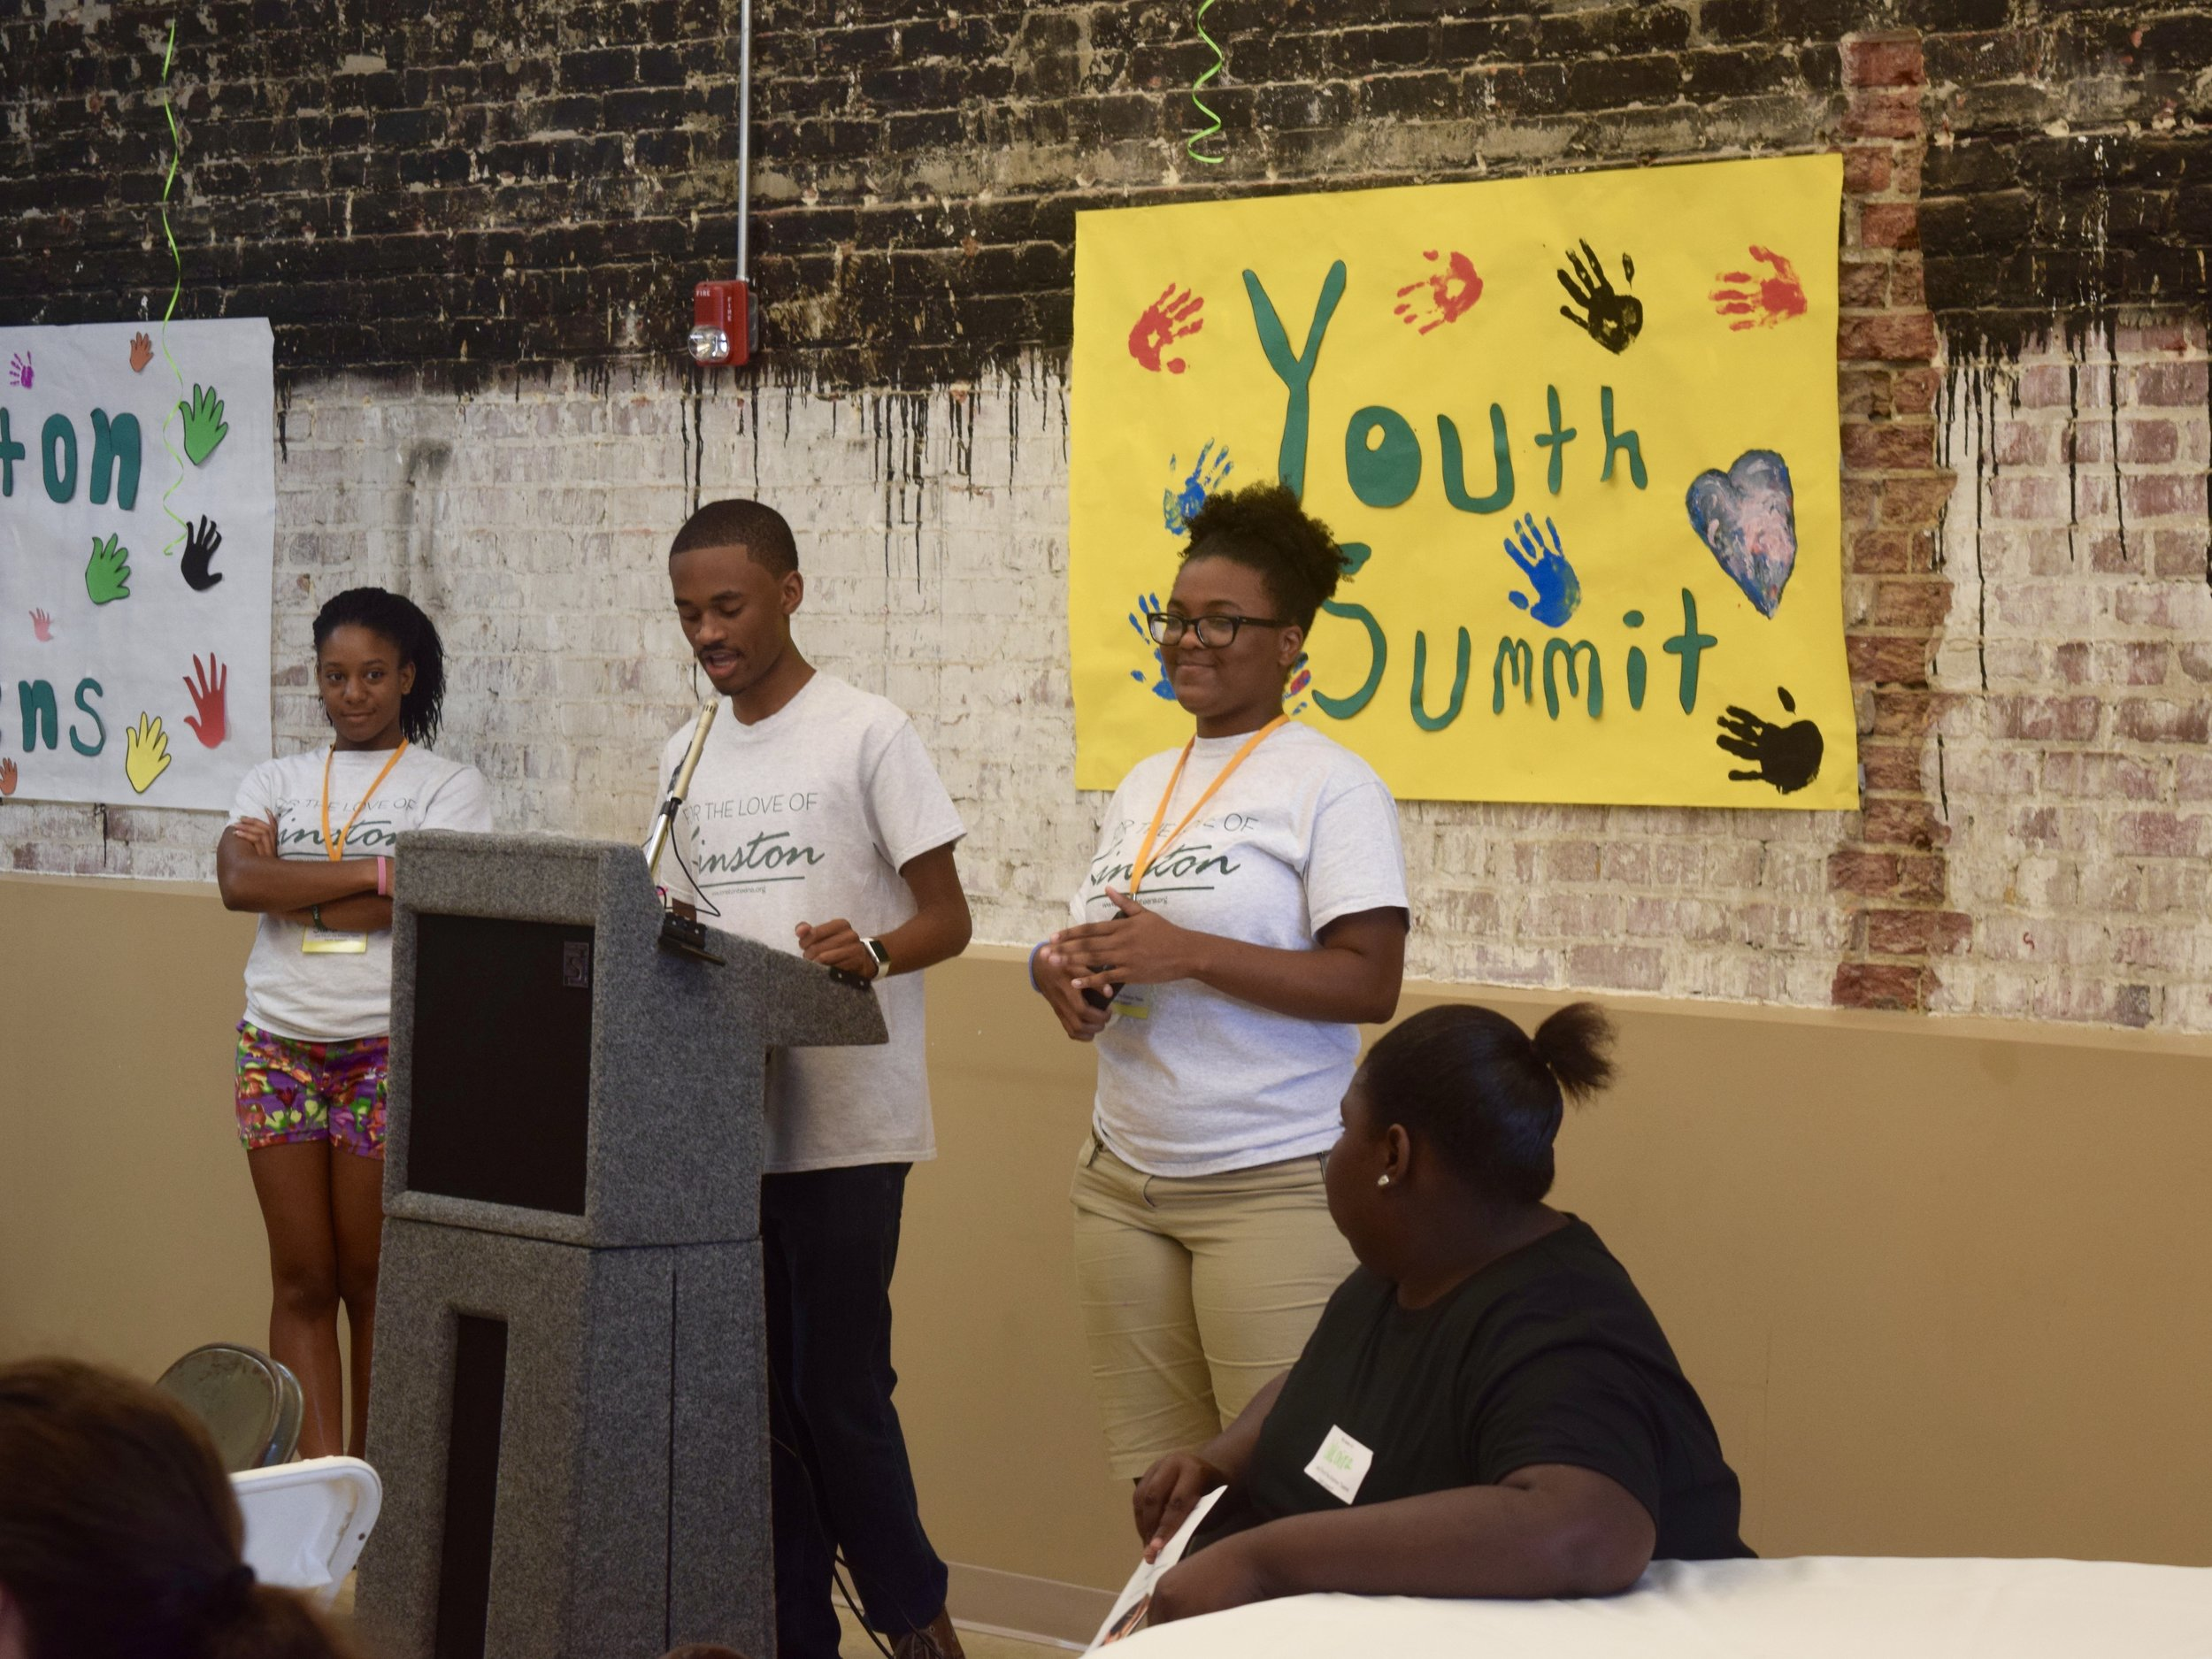 Photo from the opening session of 2016's Youth Leadership Summit at the Kinston Enterprise Center on Saturday, July 22.